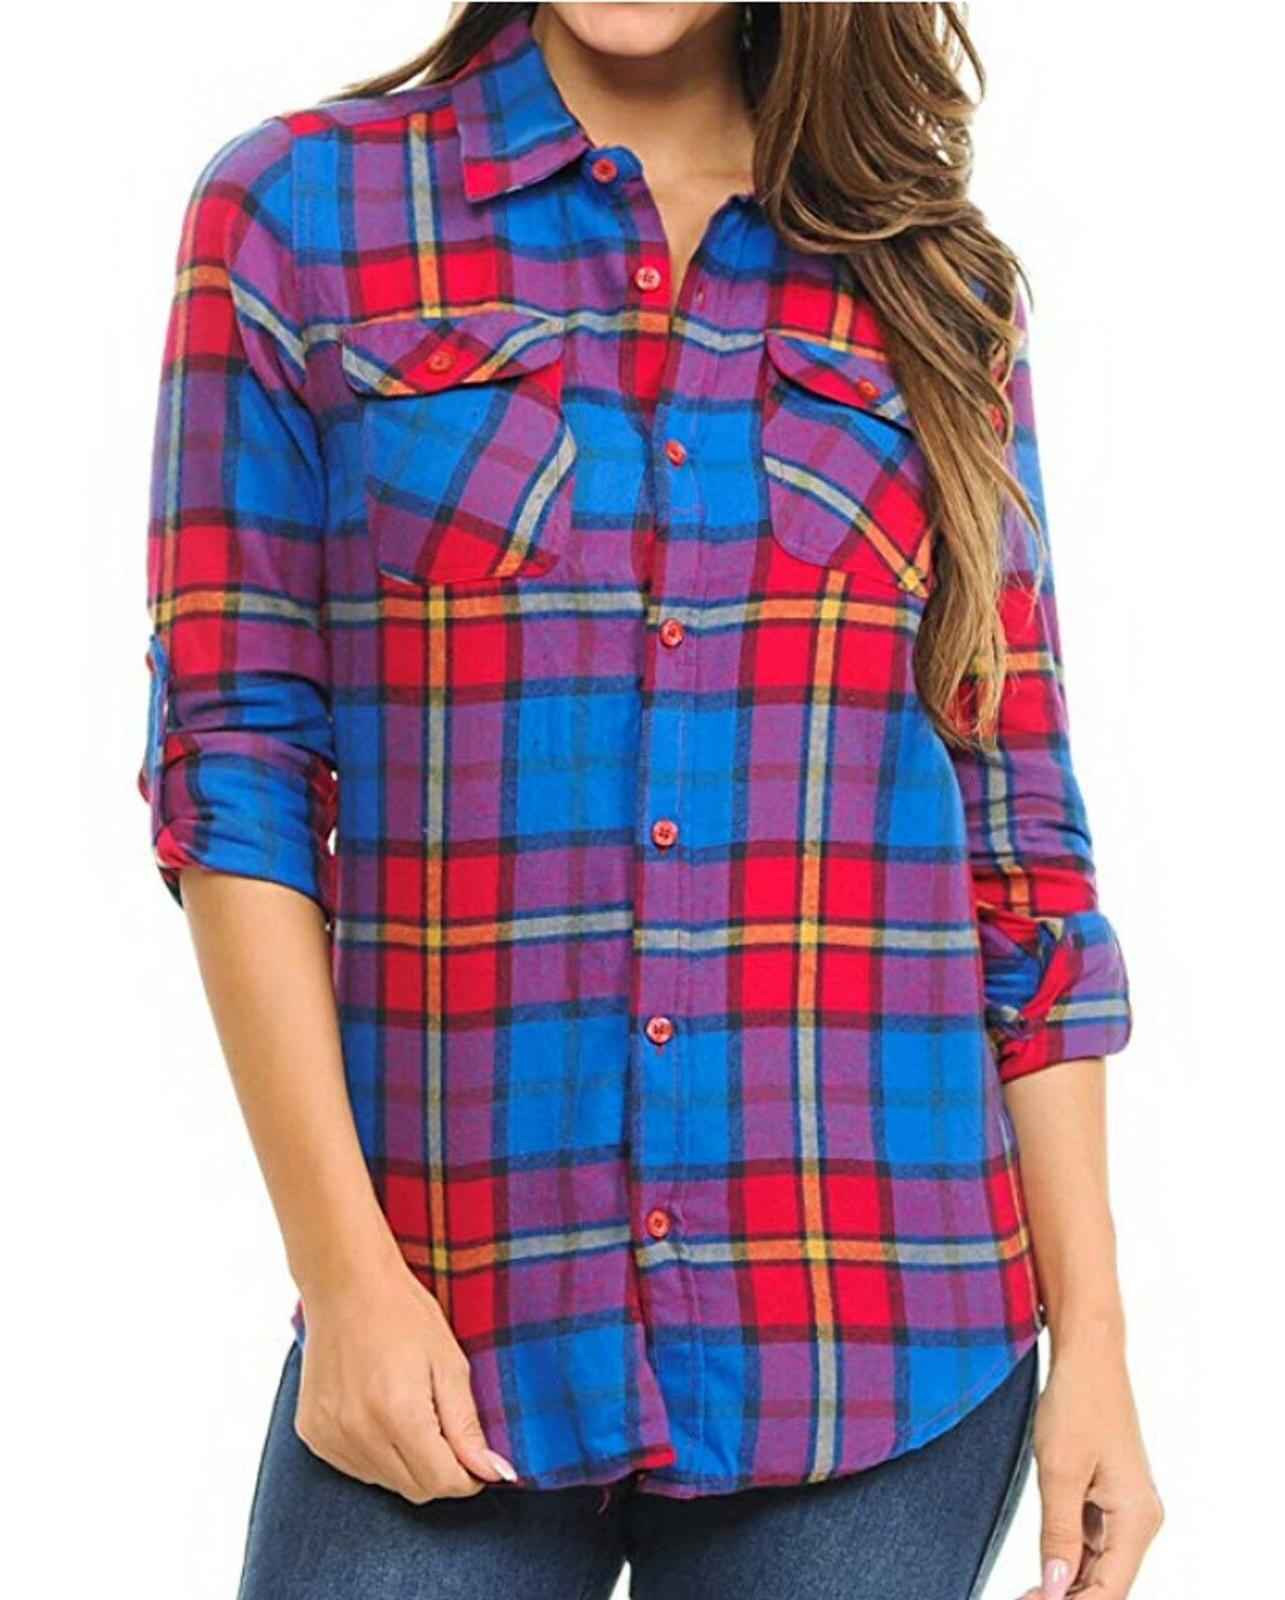 Inso Checkered Long Cotton Button